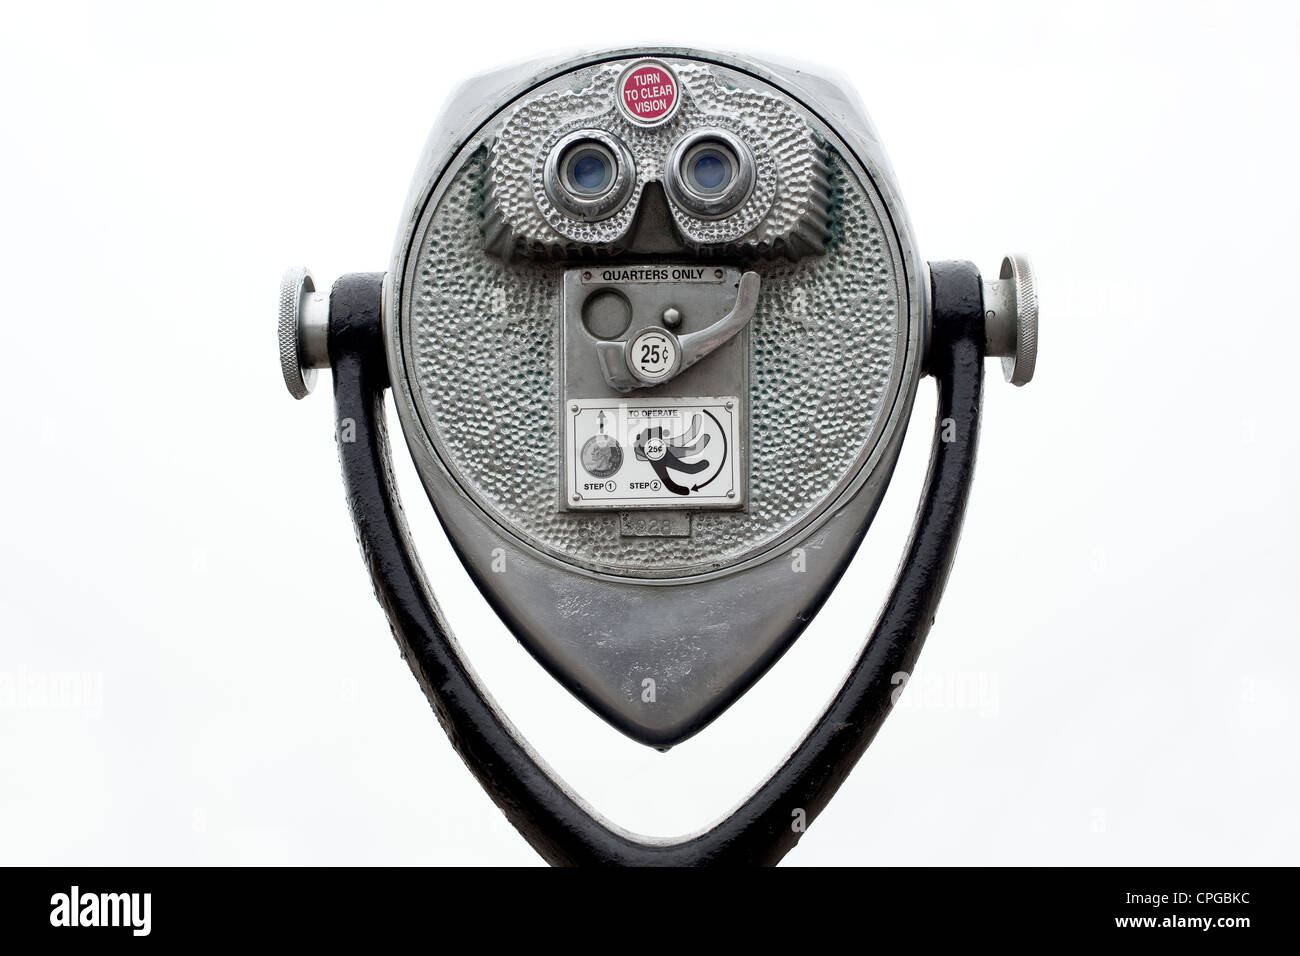 Coin operated binoculars on white - Stock Image